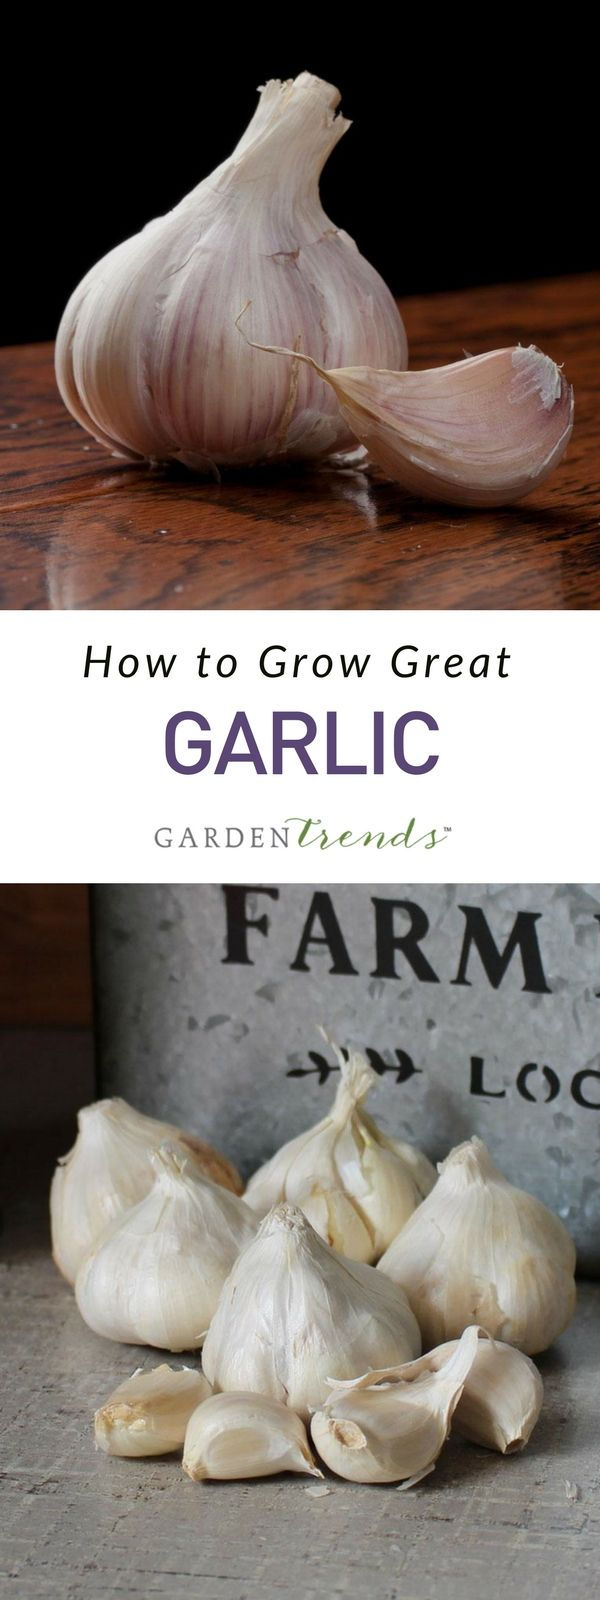 Interior designs medium size vertically growing onions growing onions - Because Garlic Is A Member Of The Allium Family Gardeners Who Grow Onions Can Easily